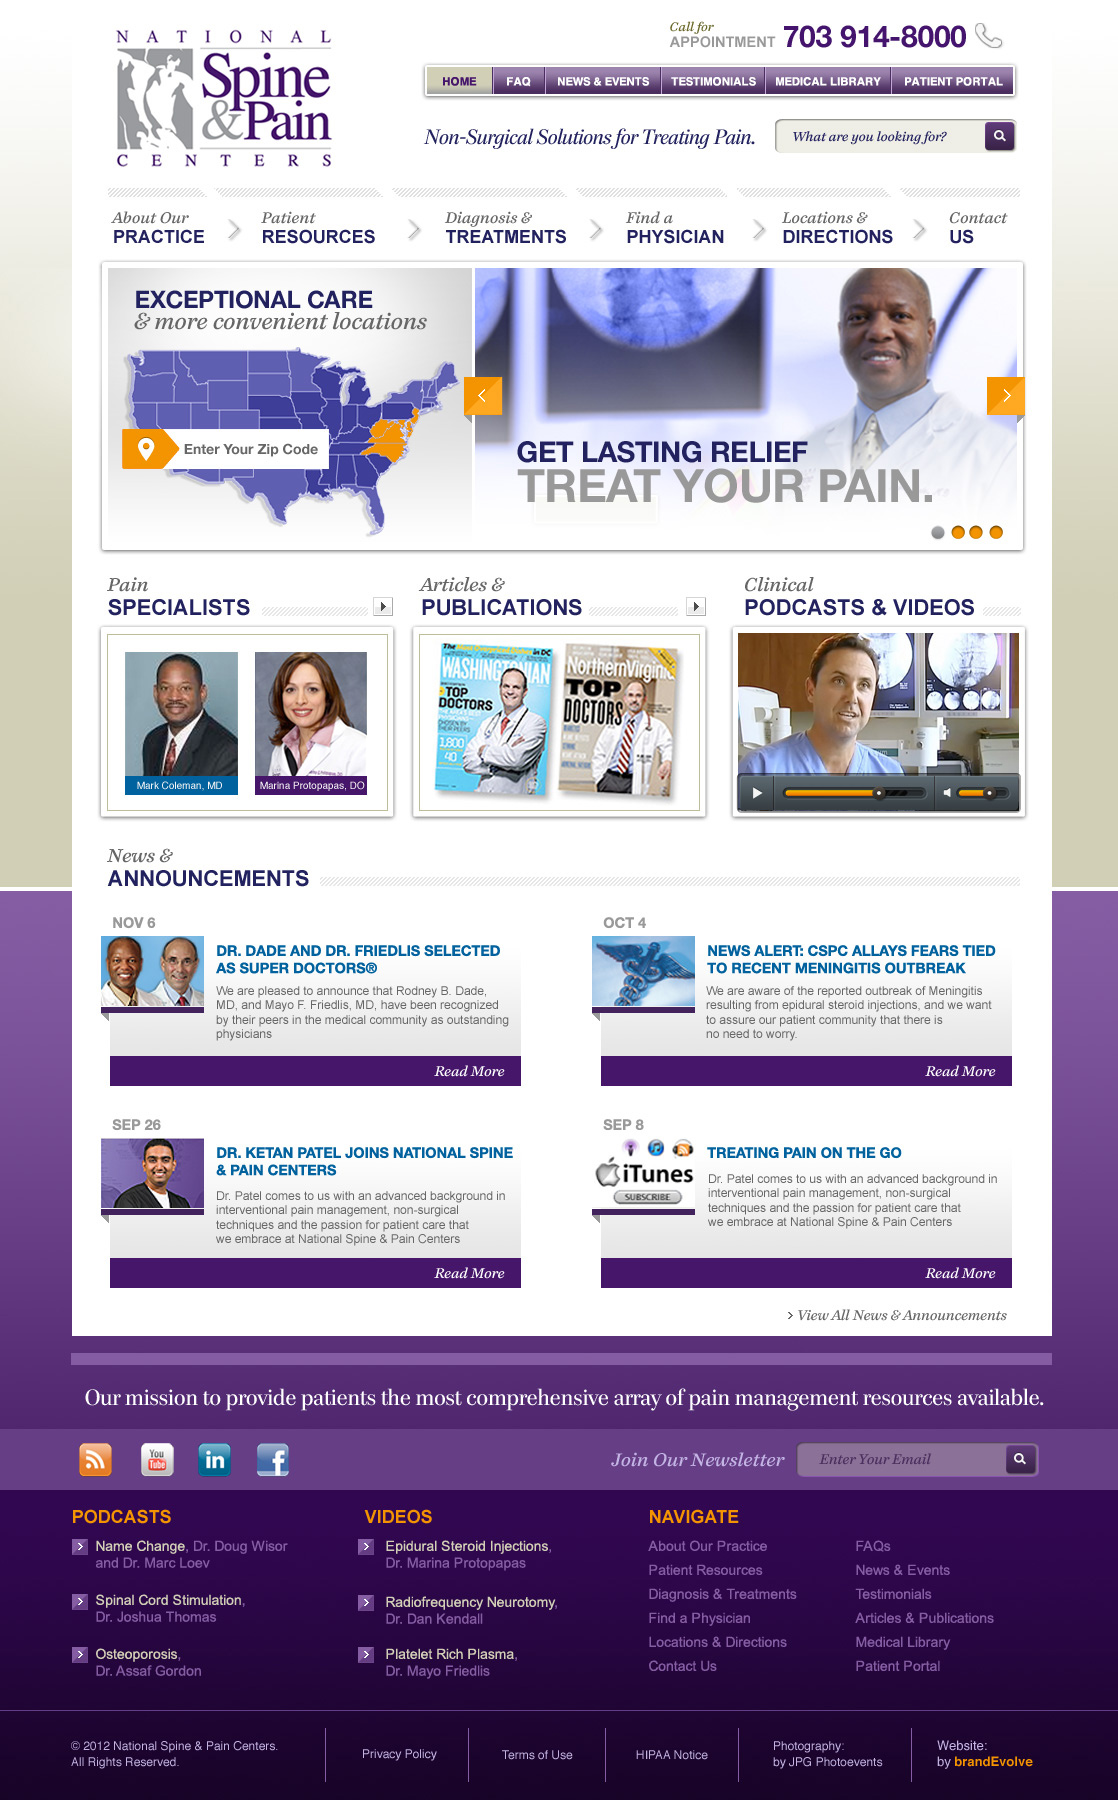 National Spine & Pain Centers    Corporate Brand Strategy, Custom Website Design, Marketing Campaigns   WordPress Implementation